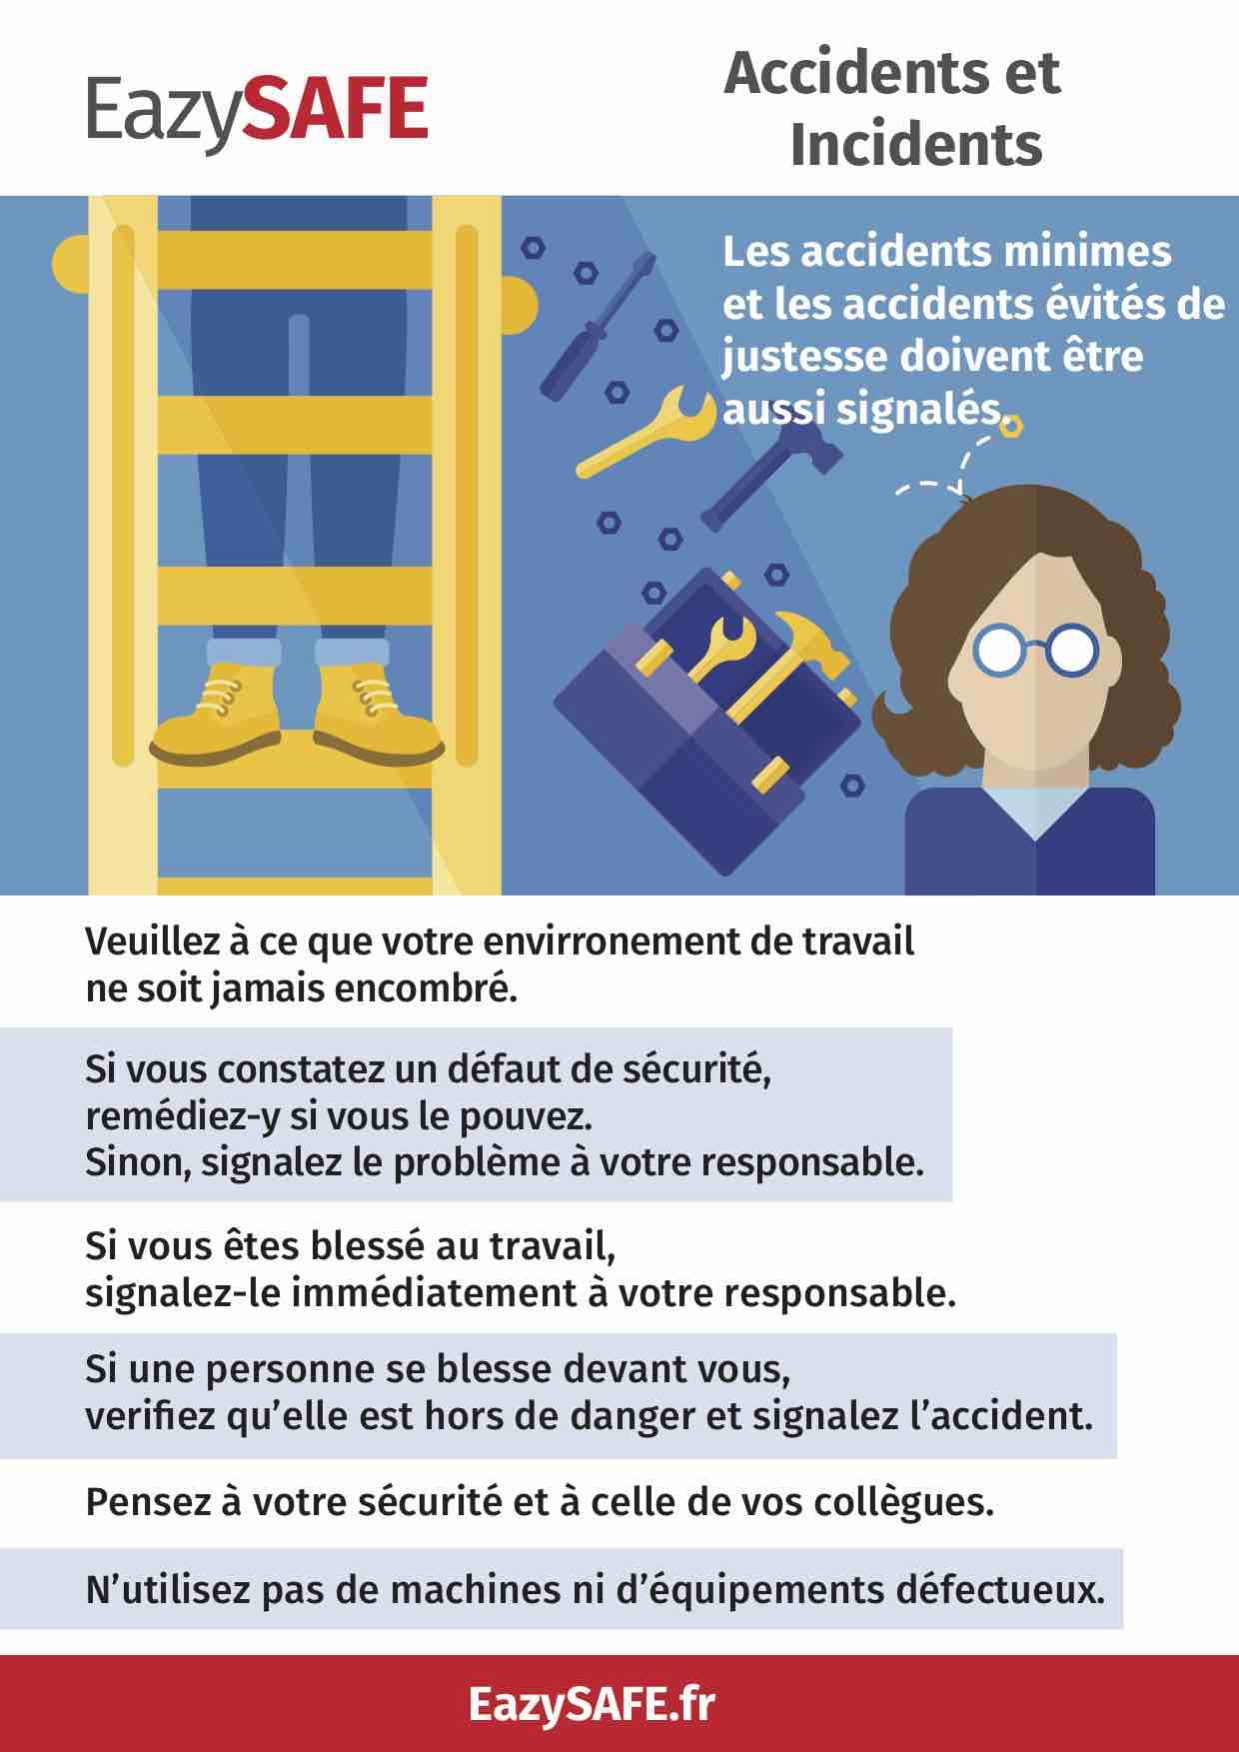 poster accident et incidents